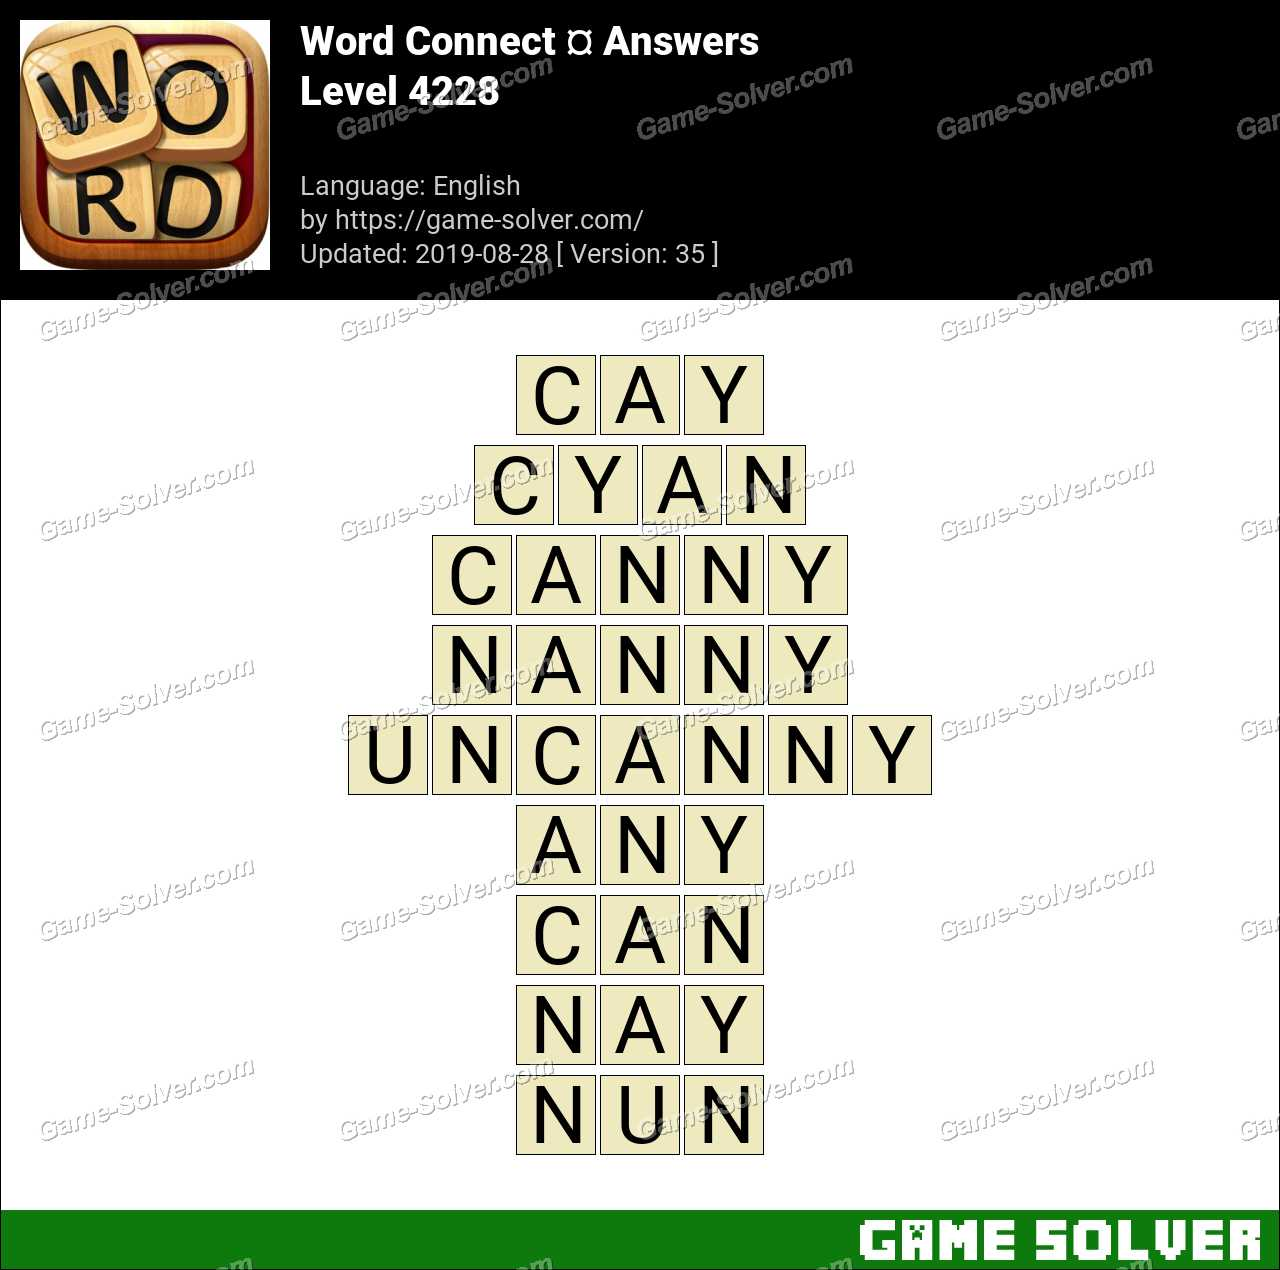 Word Connect Level 4228 Answers